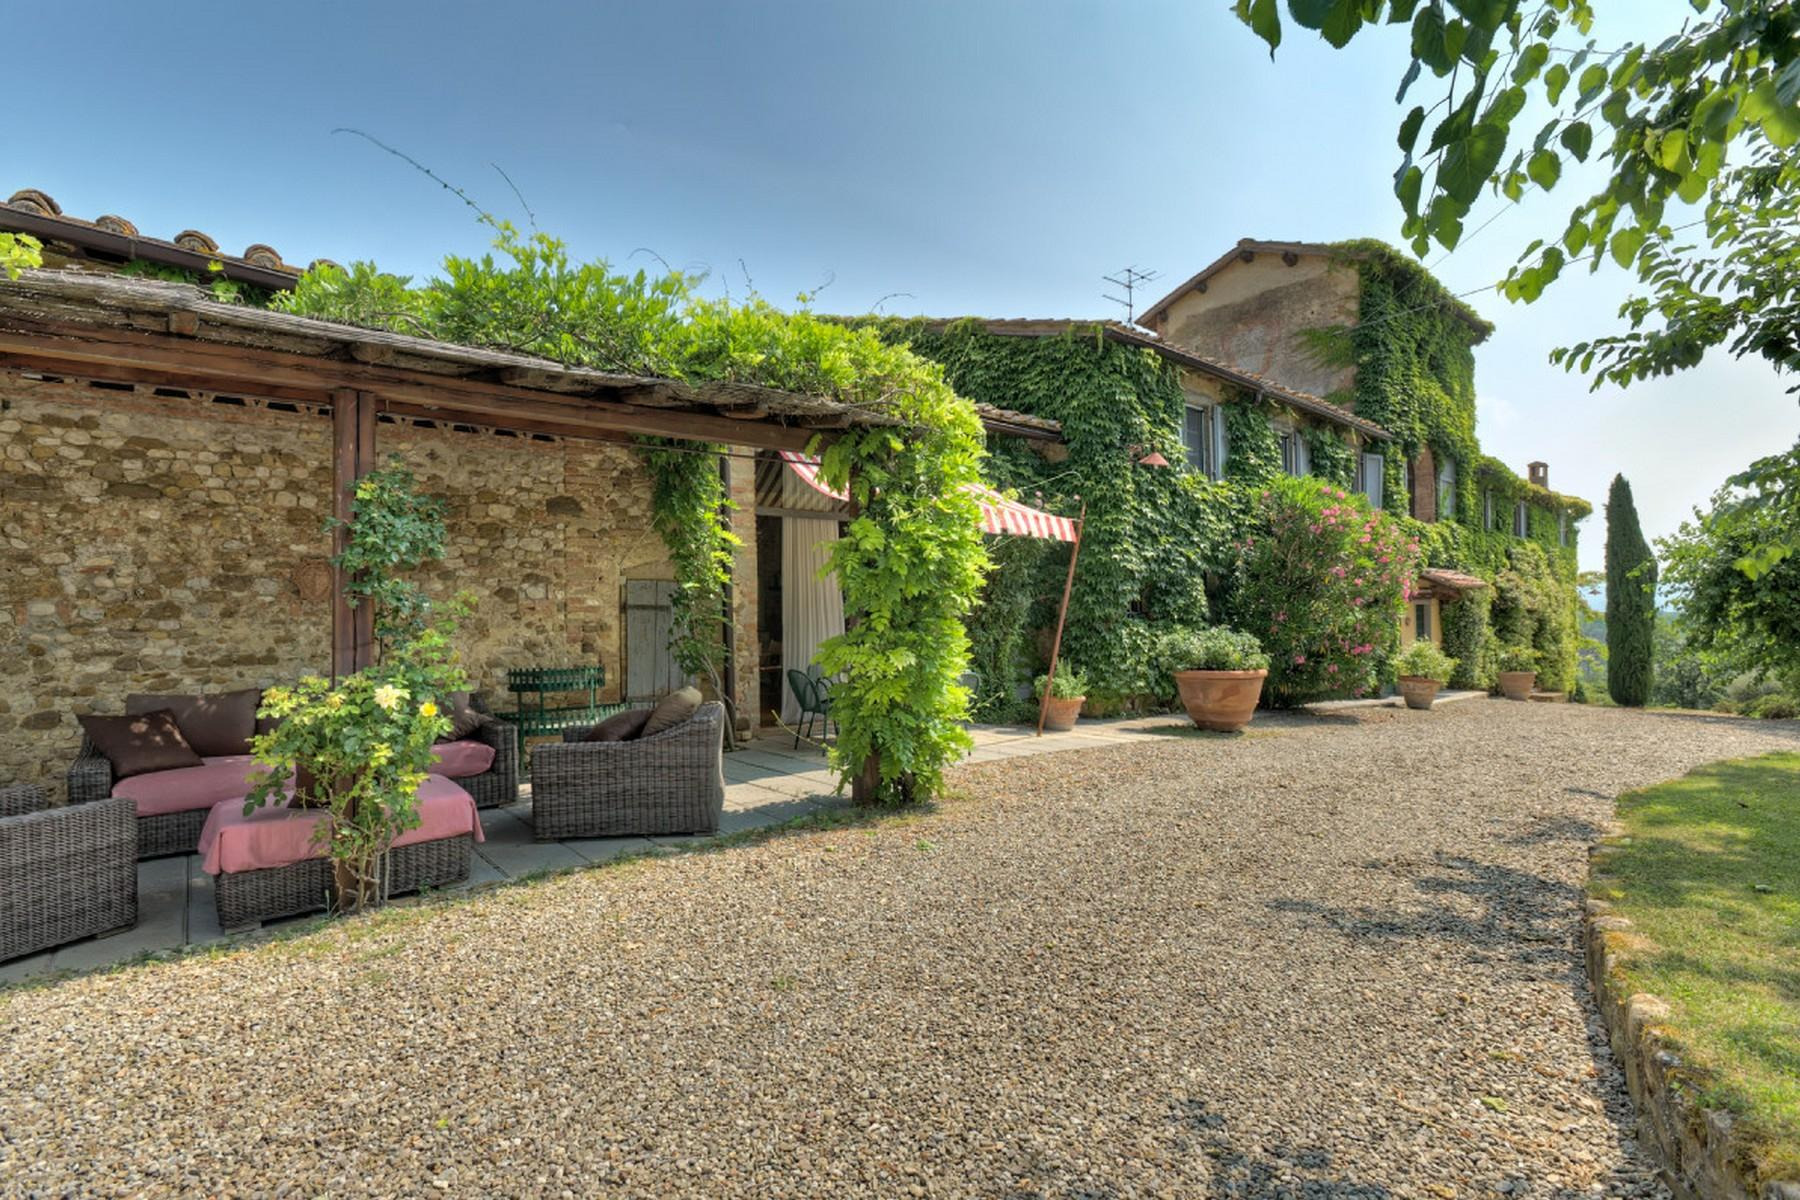 State-of-the-art rustic villa set in Florentine Chianti - 4